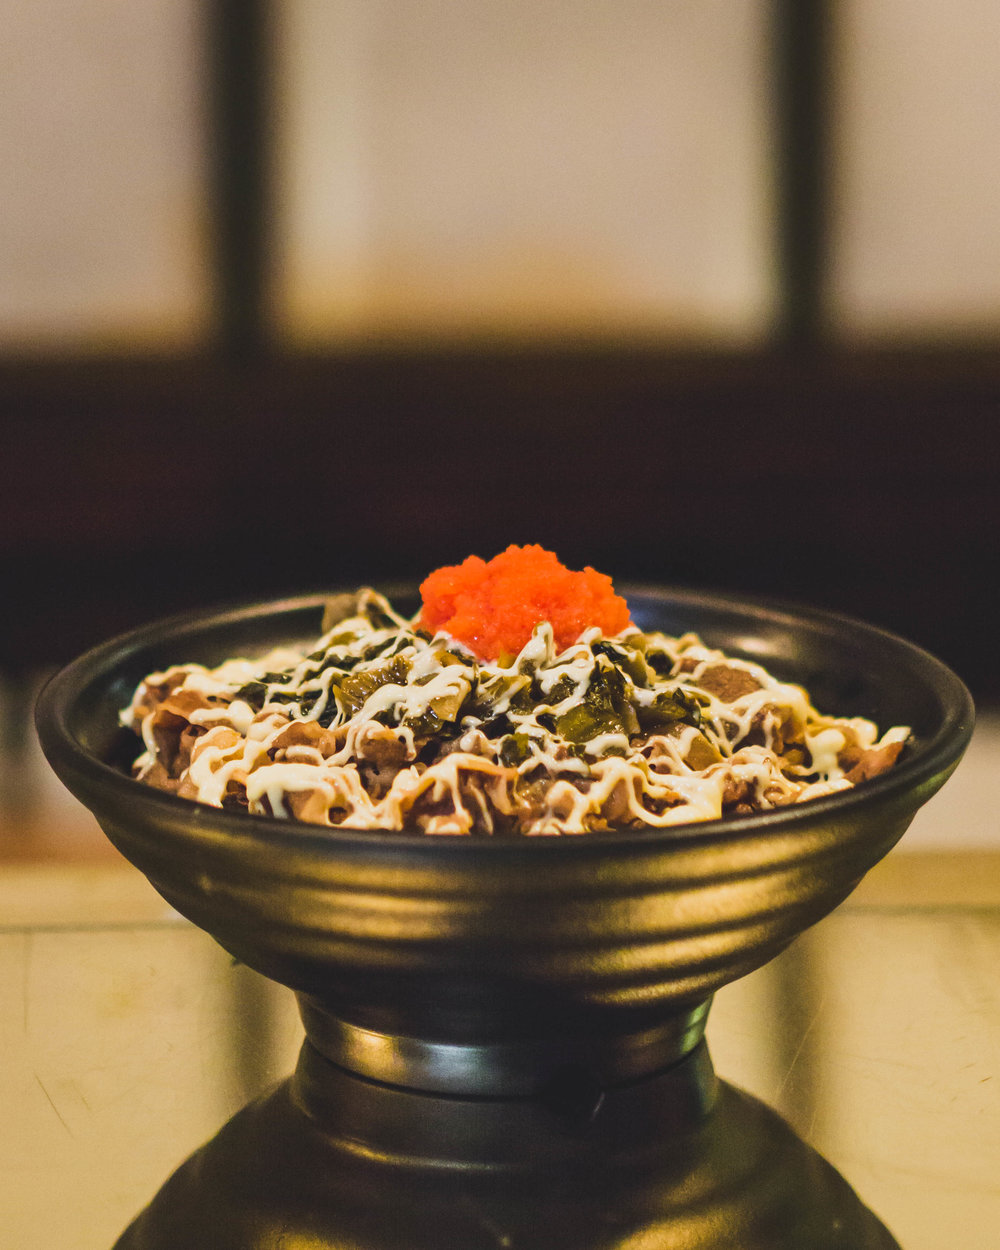 GYU-DON - Sliced marinated beef & onion, mentaiko (seasoned cod roe), spicy takana (Pickled Japanese mustard leaf) w/ mayonnaise on top of rice in the bowl